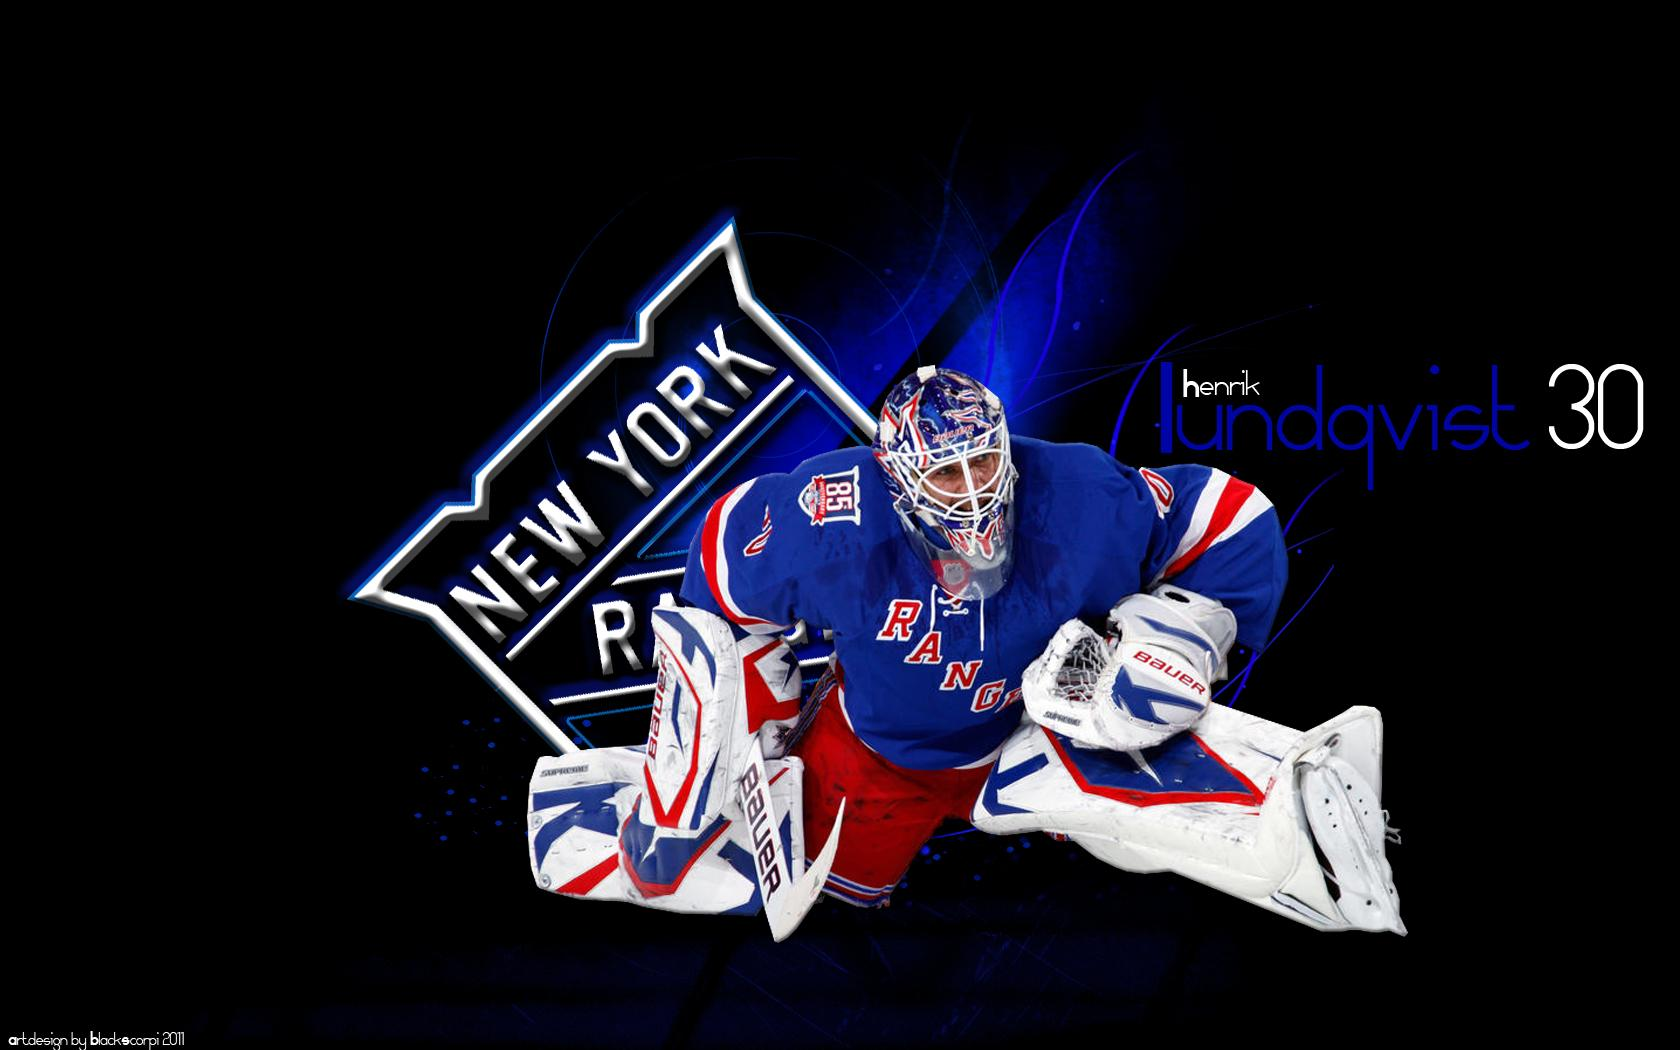 Rangers Wallpaper New York Rangers 282298 Hd Wallpaper